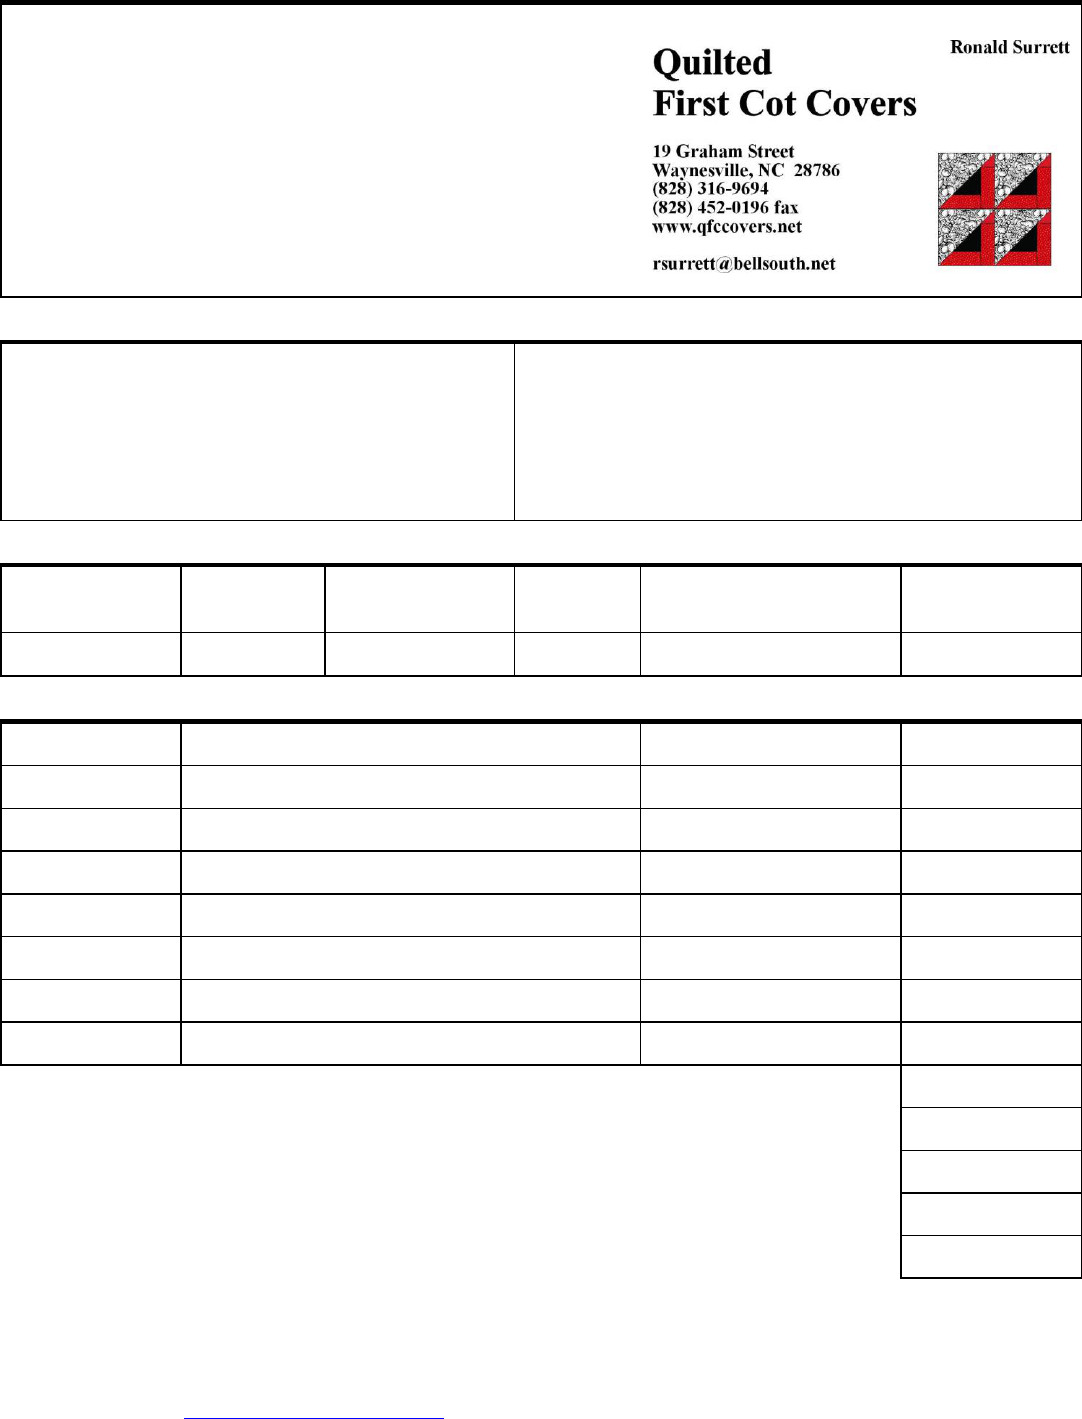 Blank Invoice Template Pdf Blank Invoice Template In Word and Pdf formats